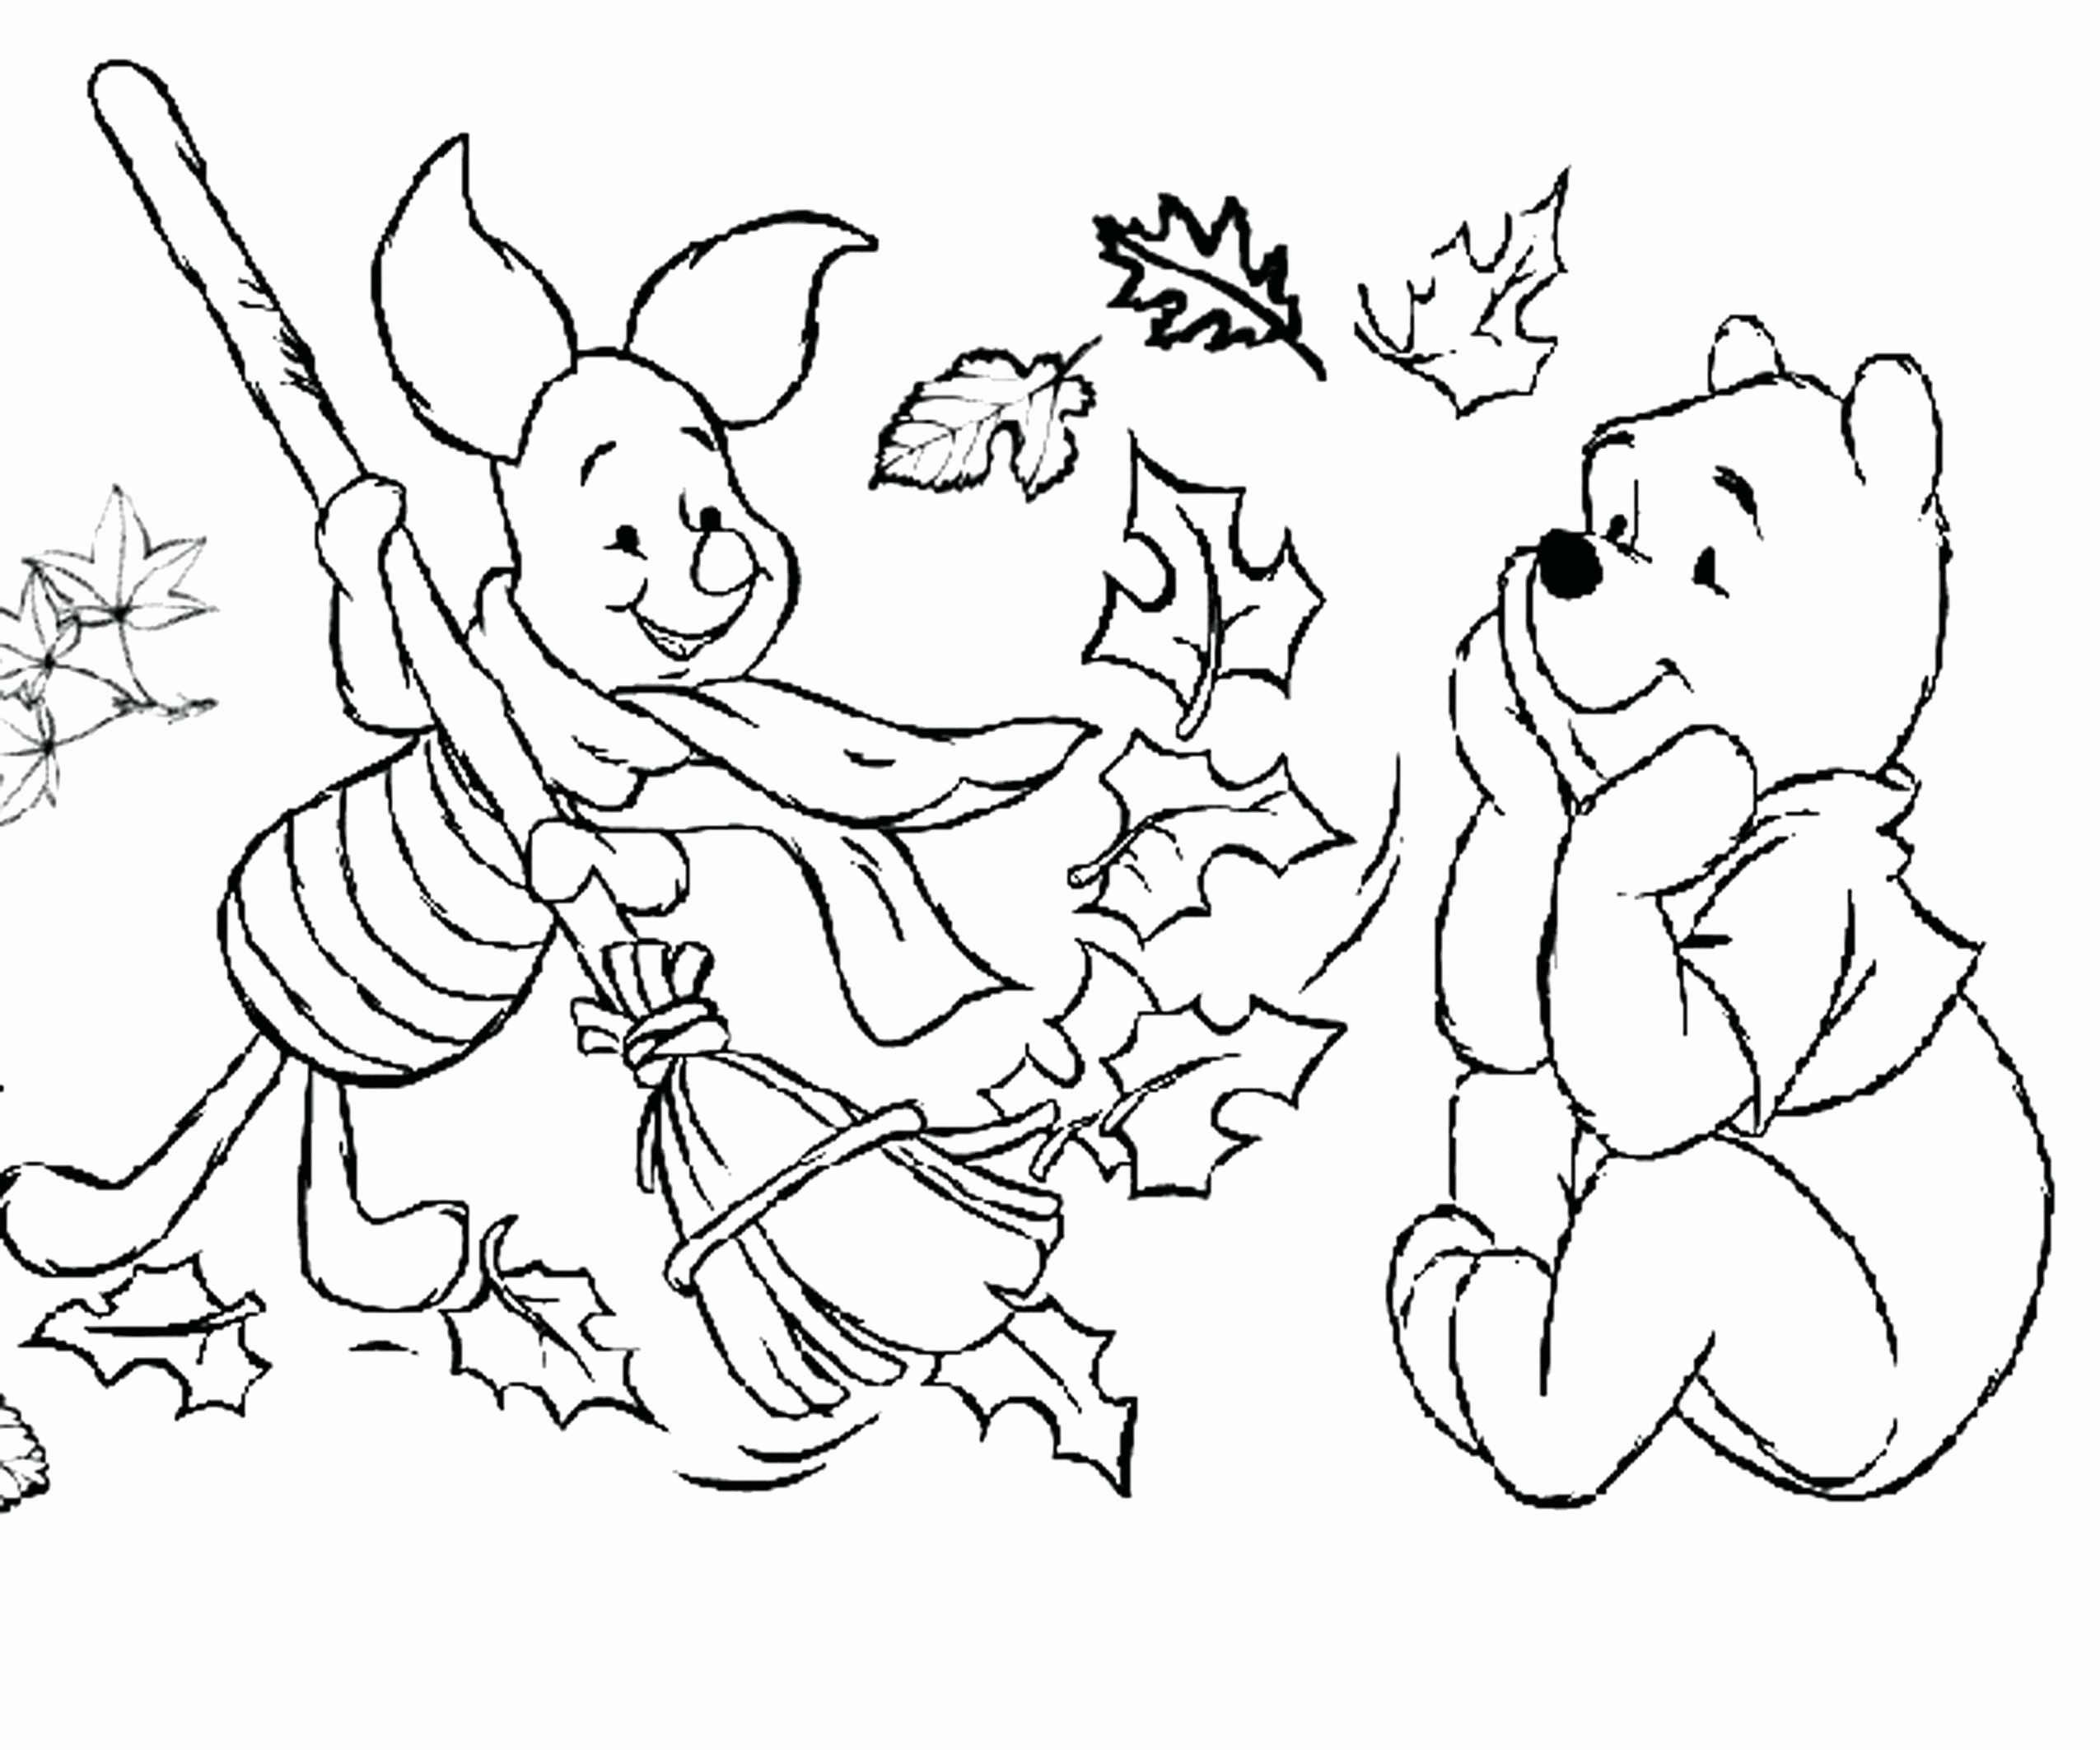 anime coloring pages online Download-Spider Coloring Pages Preschool Fall Coloring Pages 0d Coloring Page Fall Coloring Pages for Kids 15-t